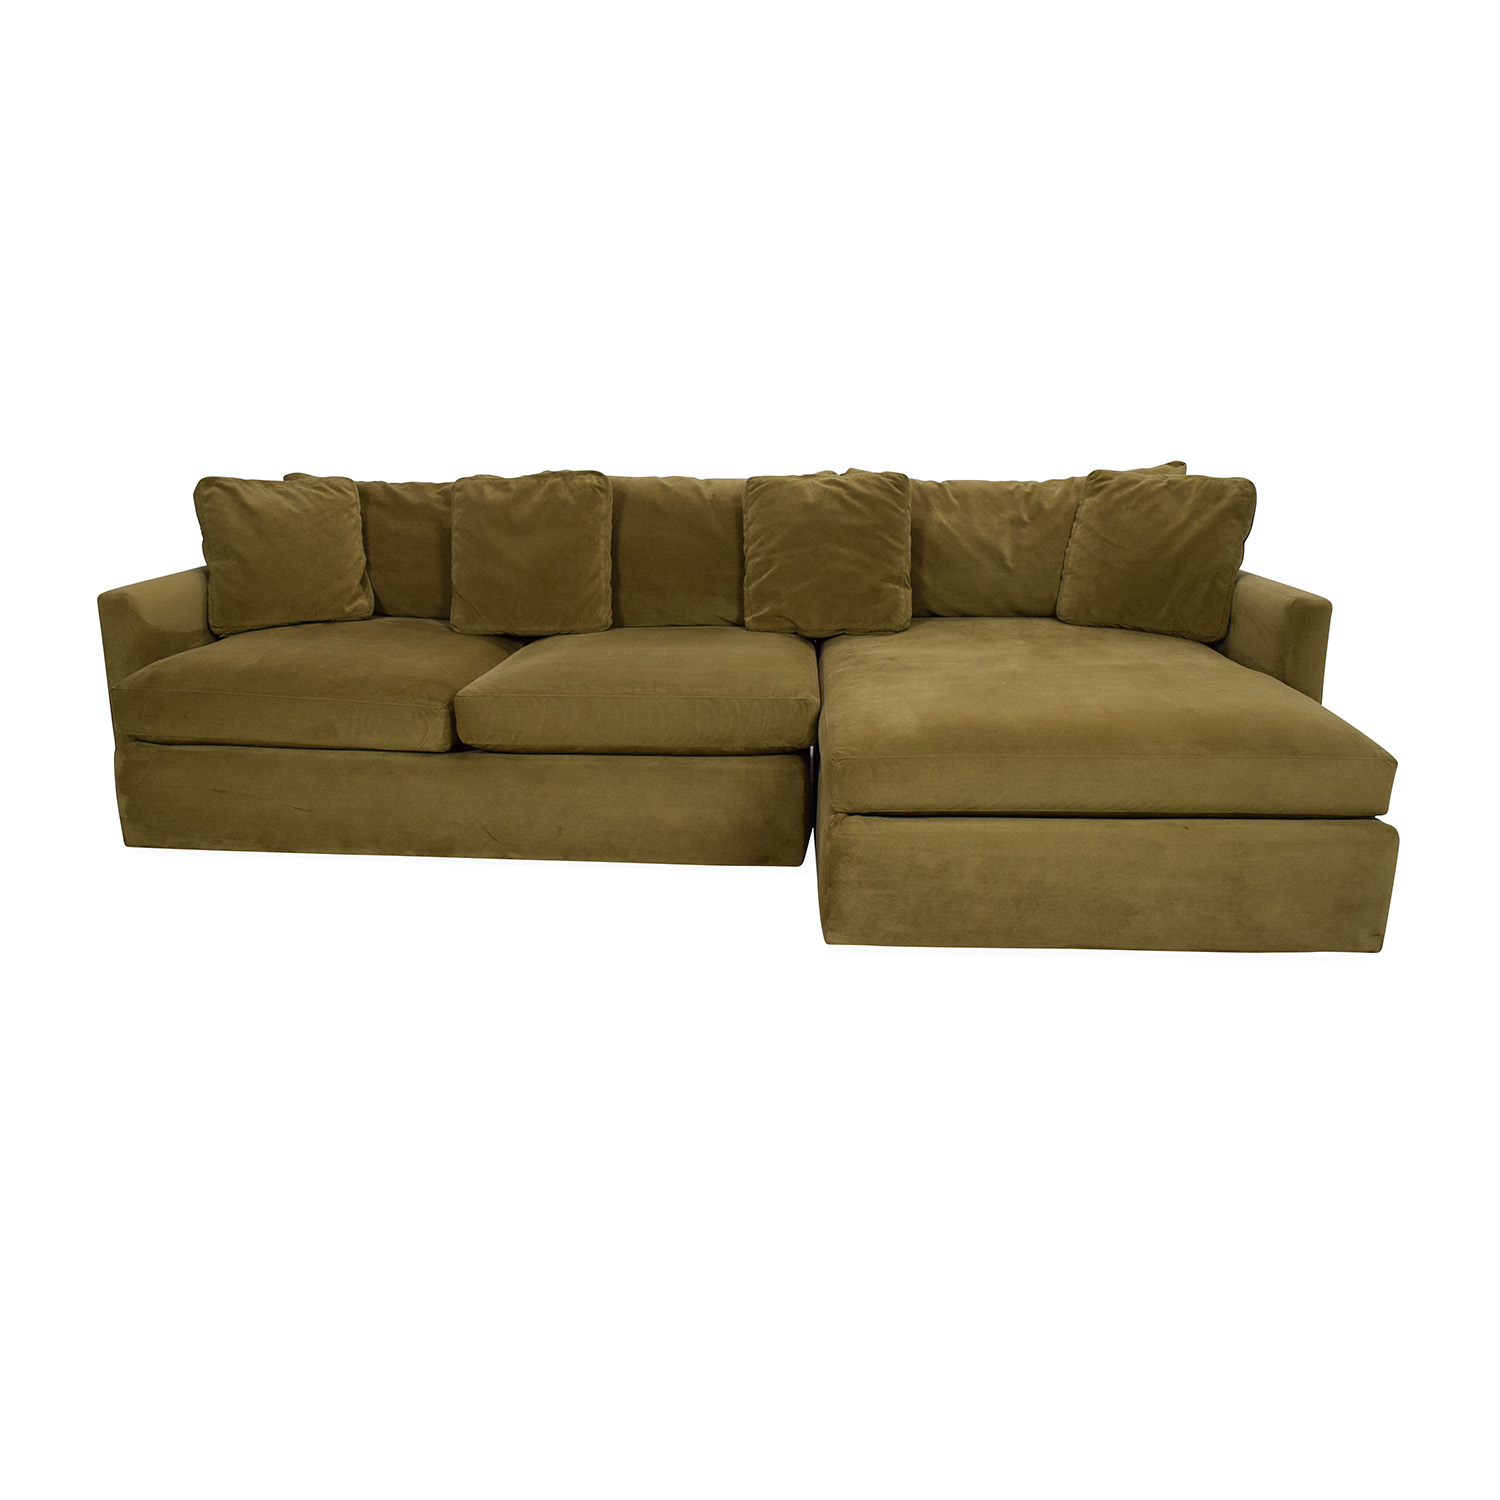 65 OFF Crate and Barrel Crate and Barrel Lounge II Sectional Sofa